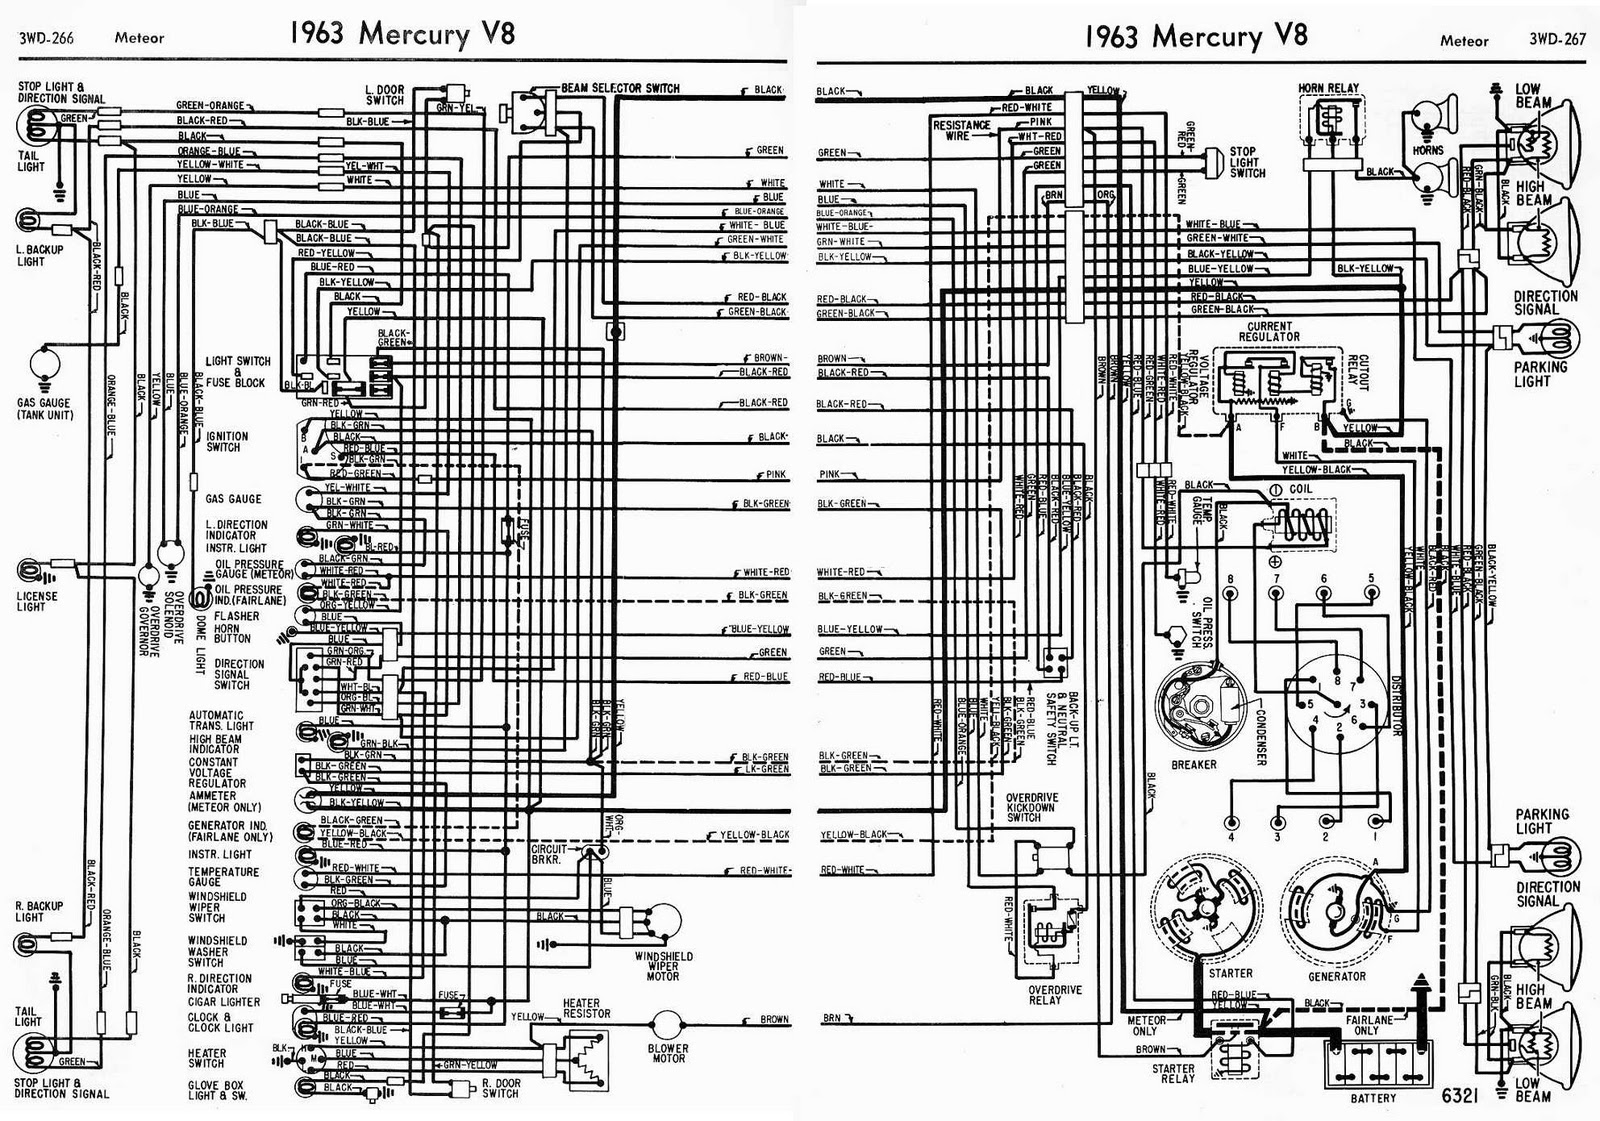 1981 Ford Econoline Van Wiring Diagram Electrical Diagrams 1988 E150 F Series Expedition